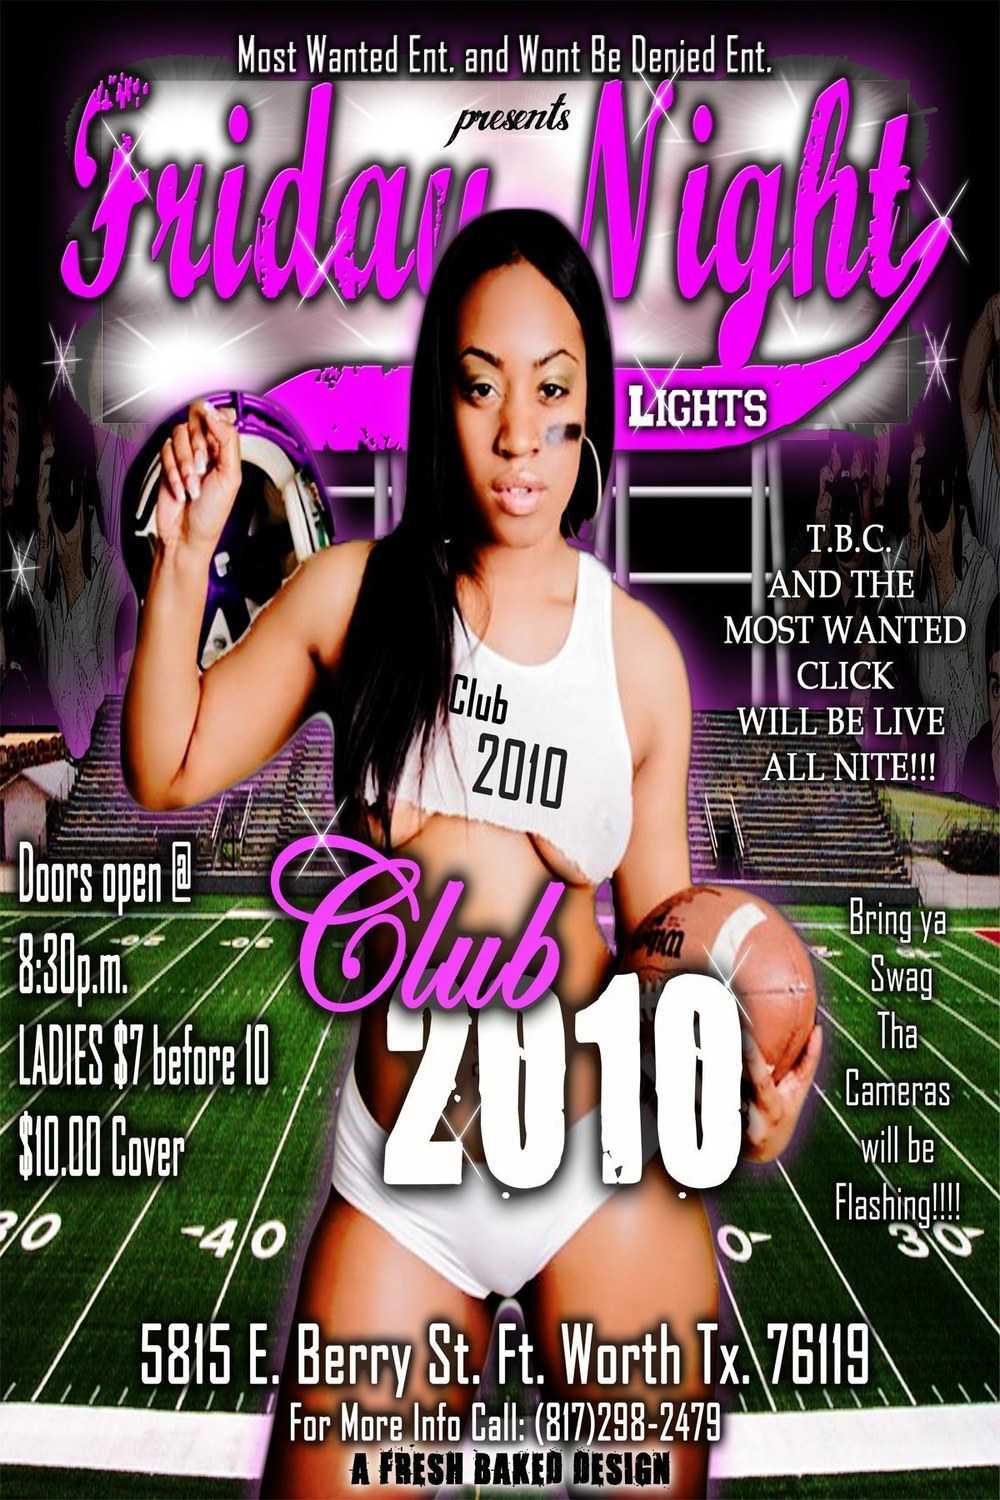 Friday Night Light Club 2010 Flyer.jpg